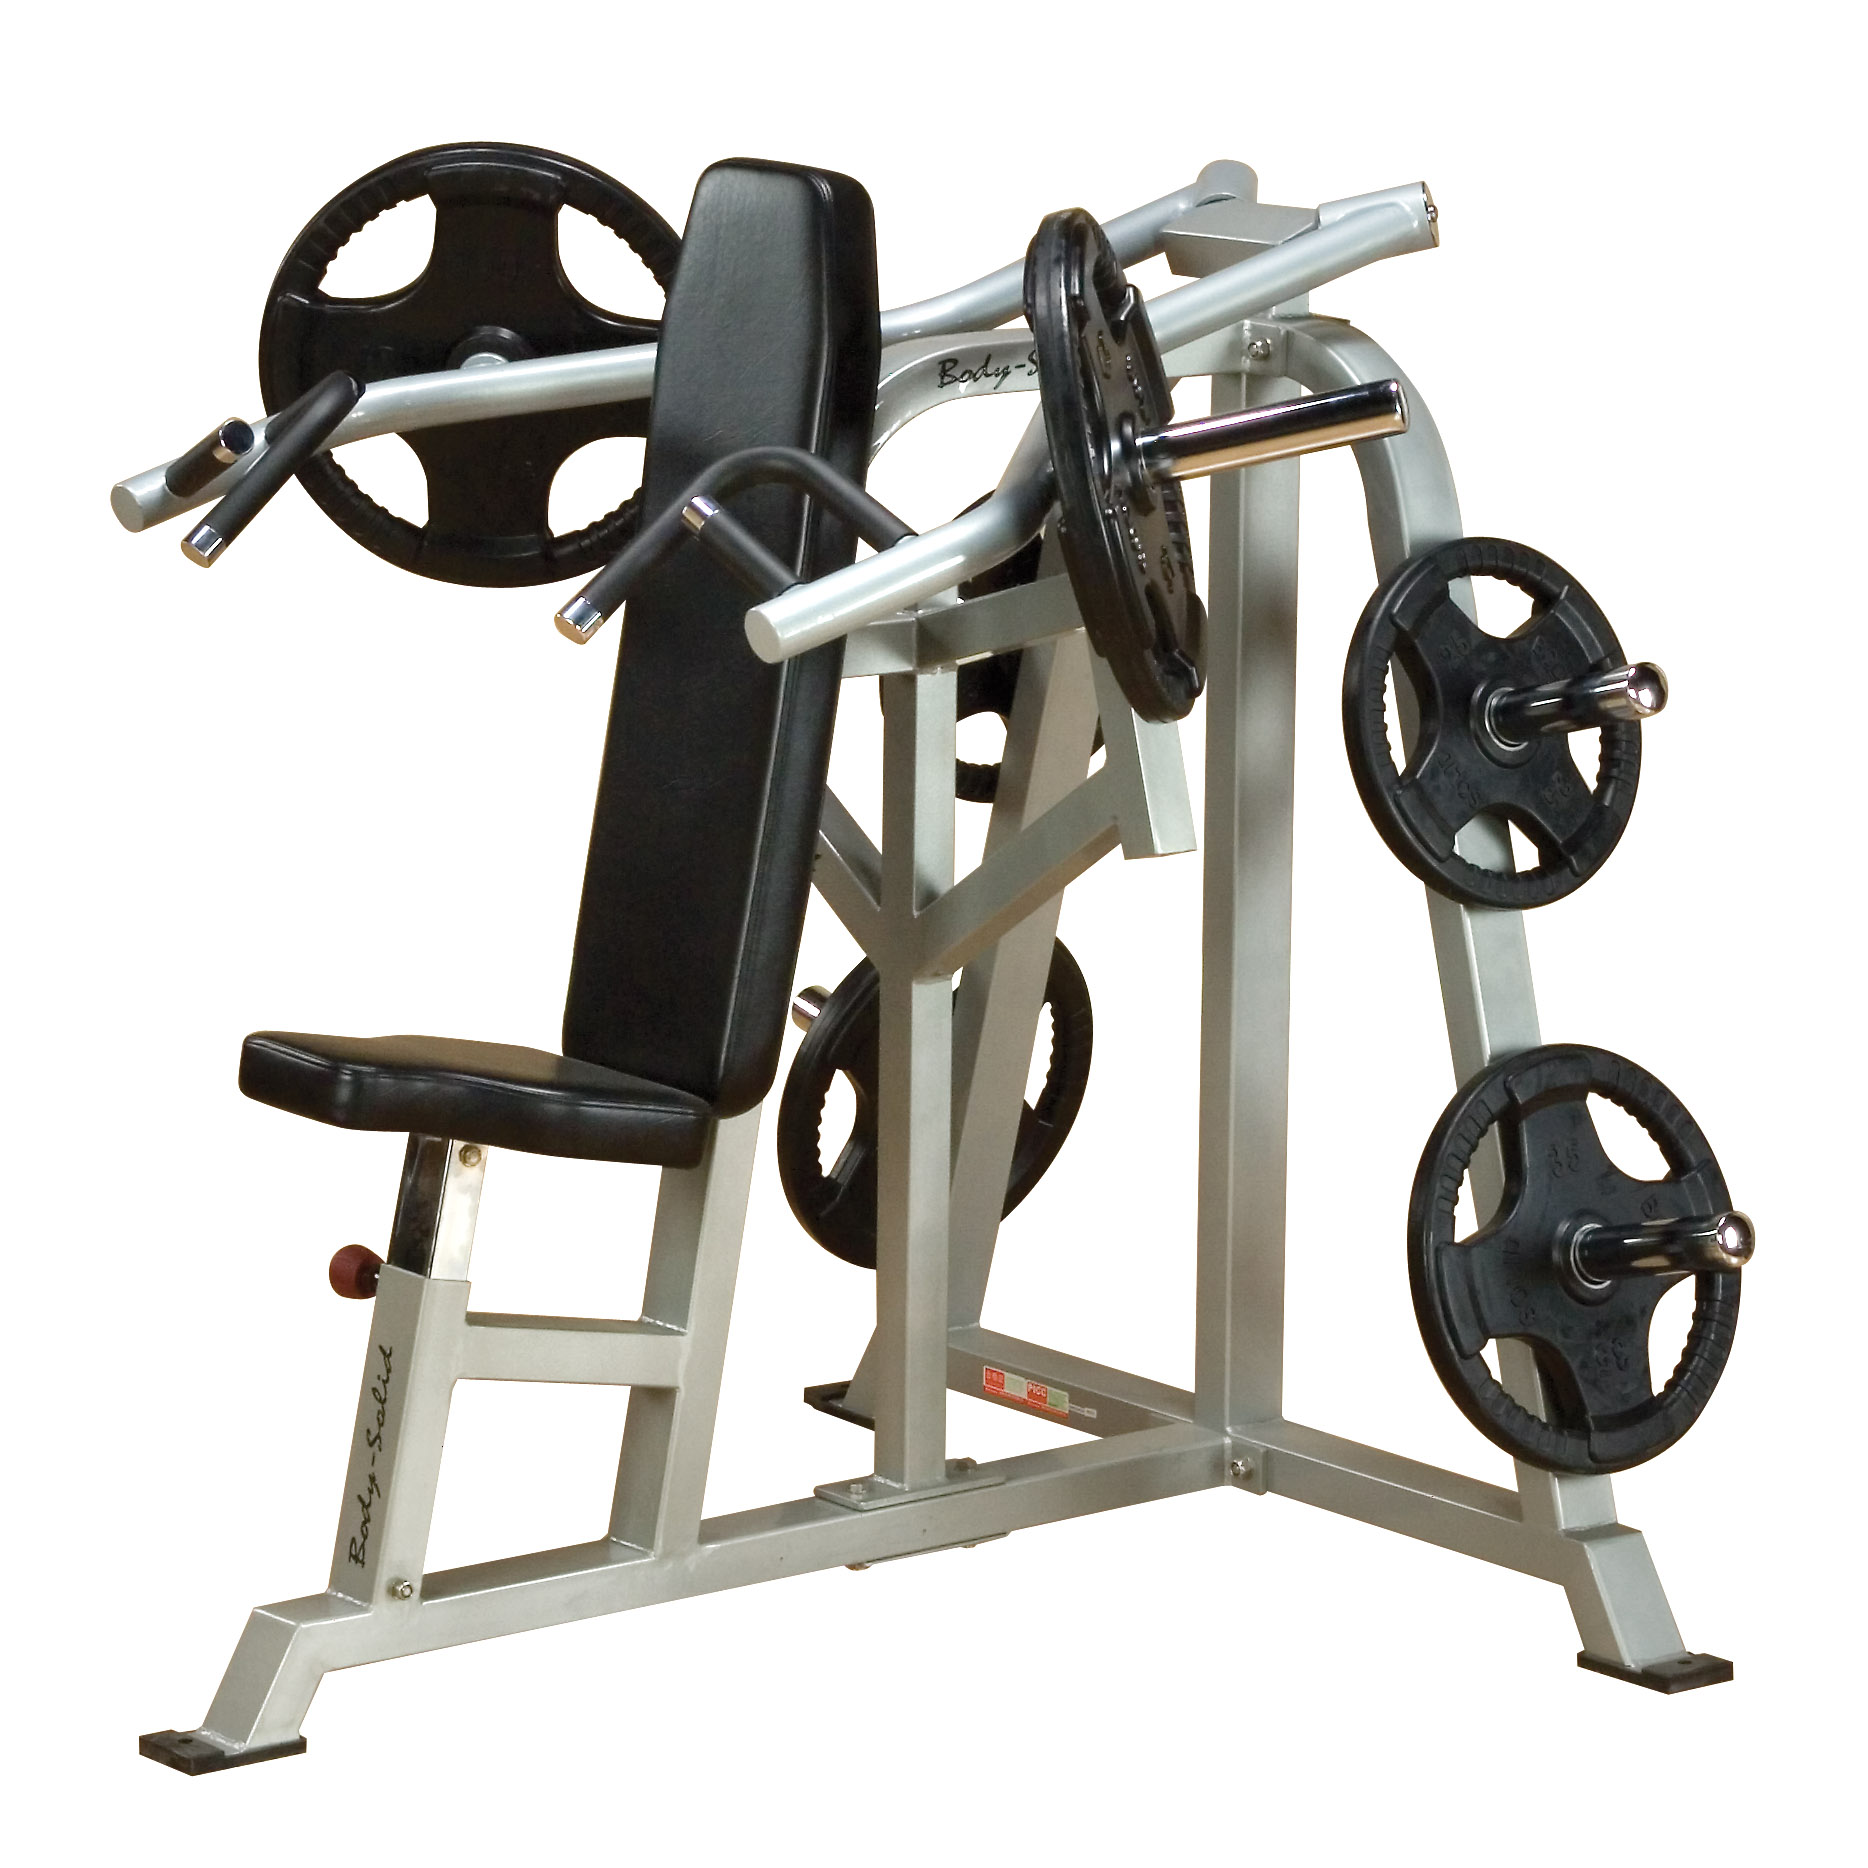 Exercise fitness home gym equipment